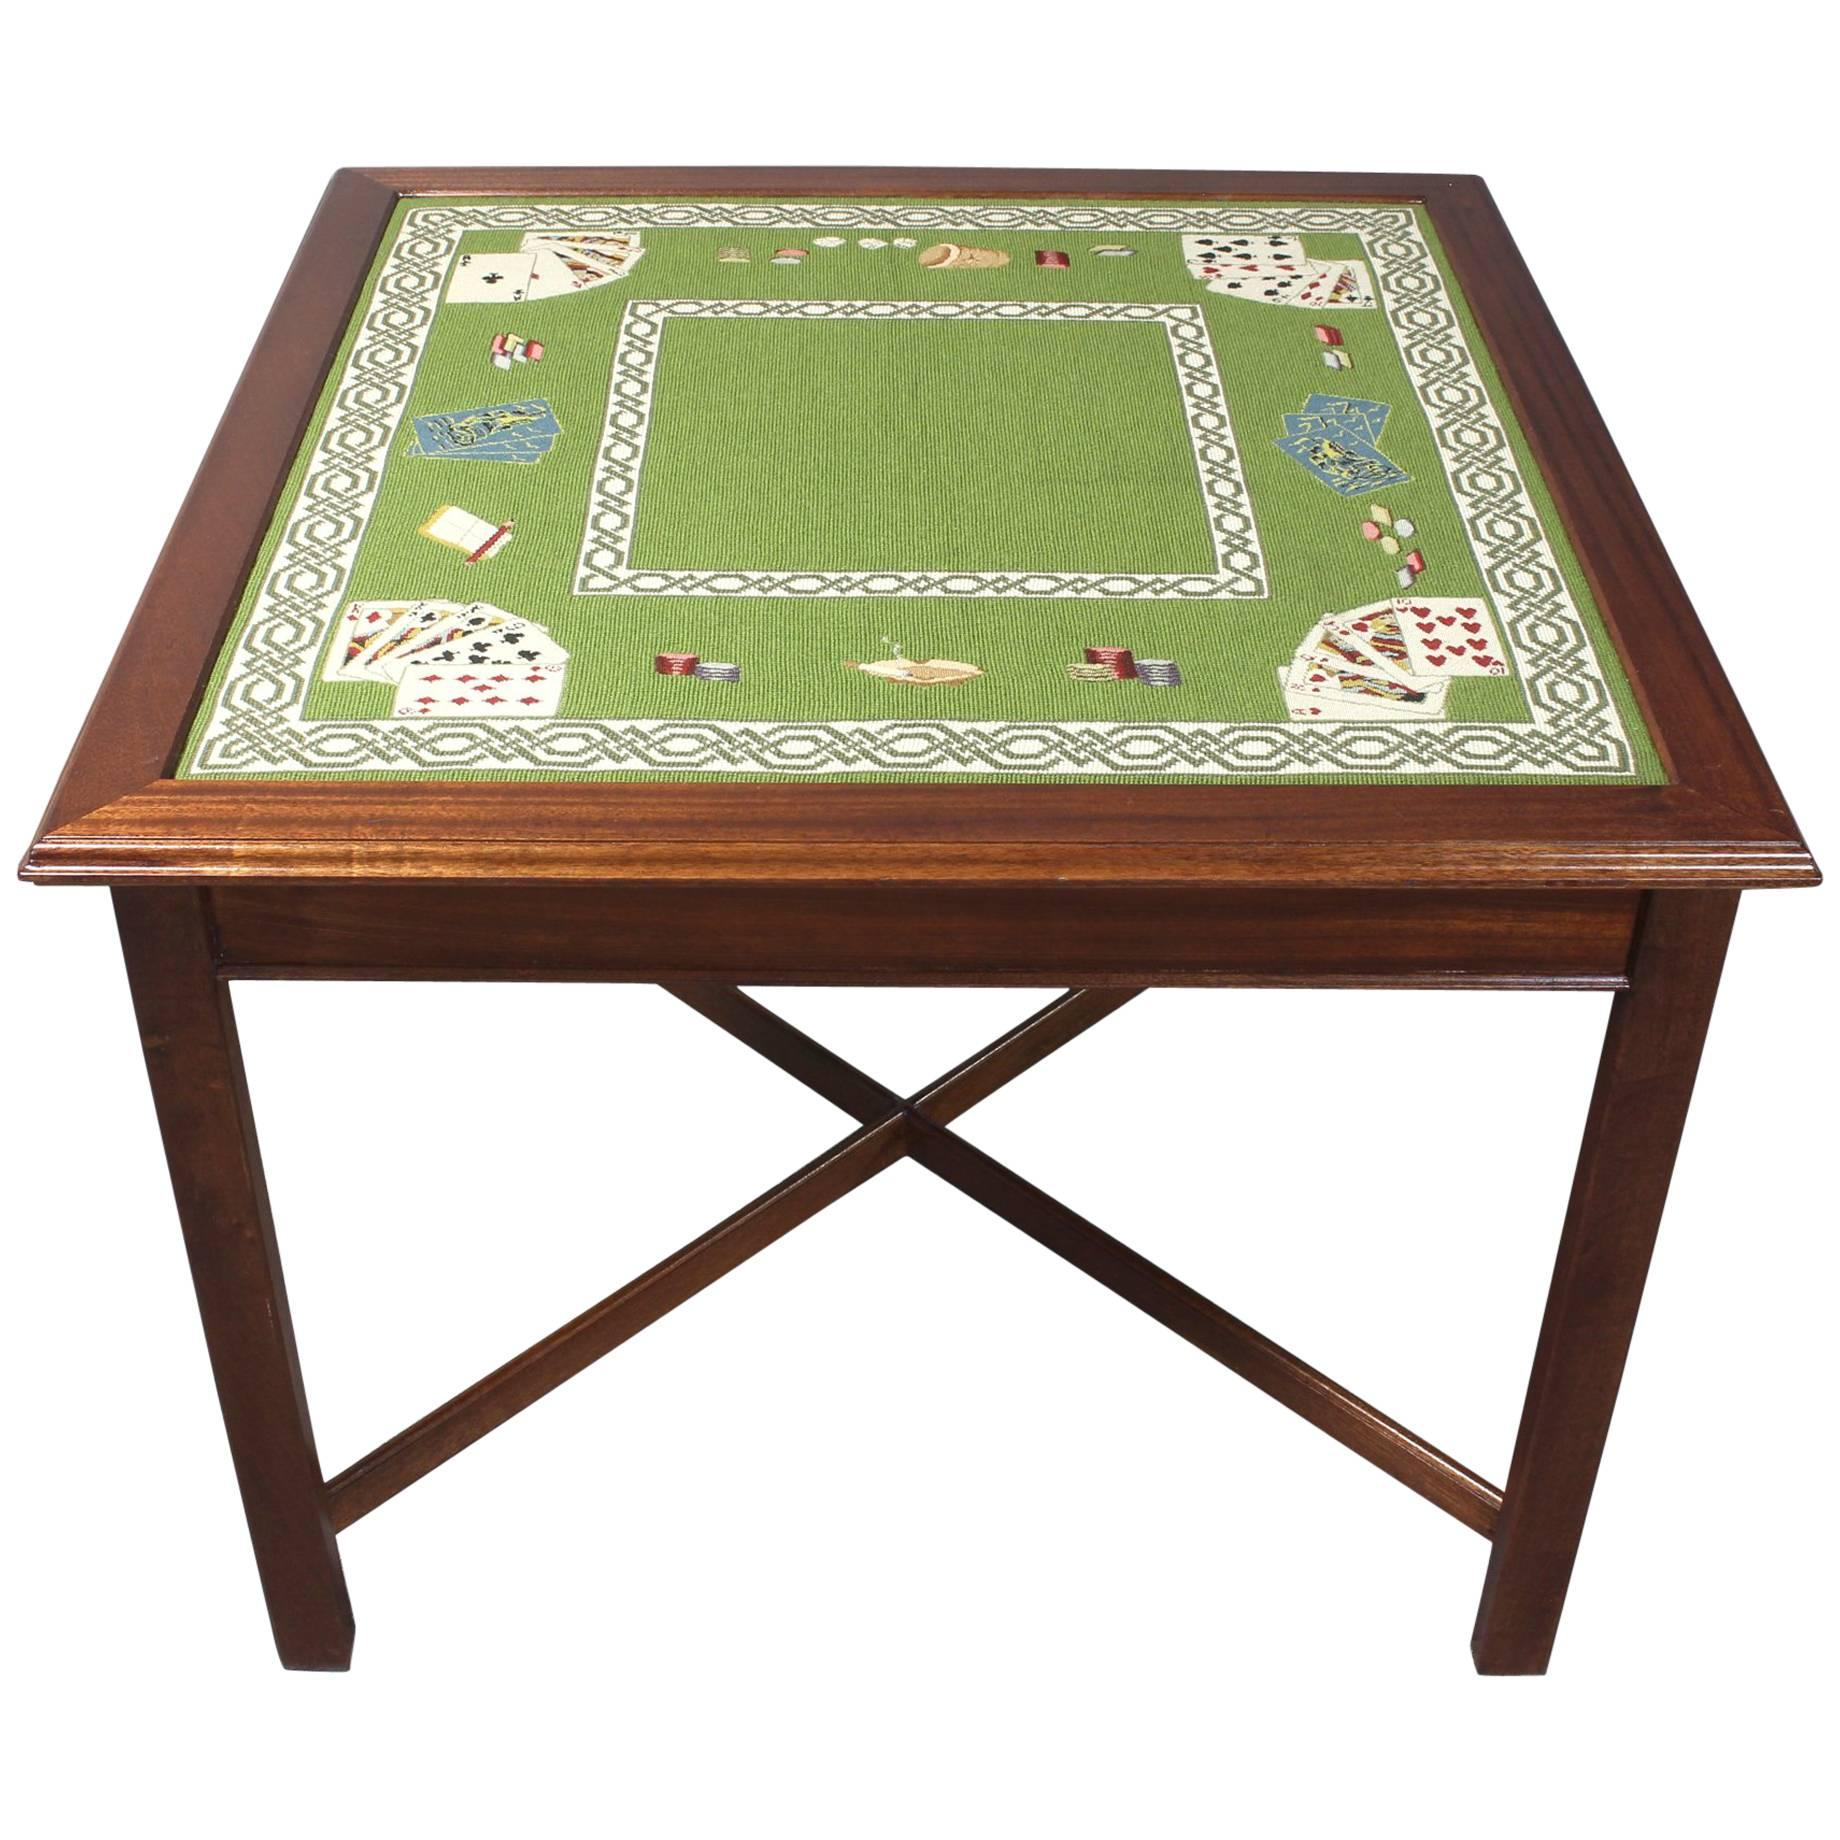 Needlepoint Top Card Table For Sale at 1stdibs